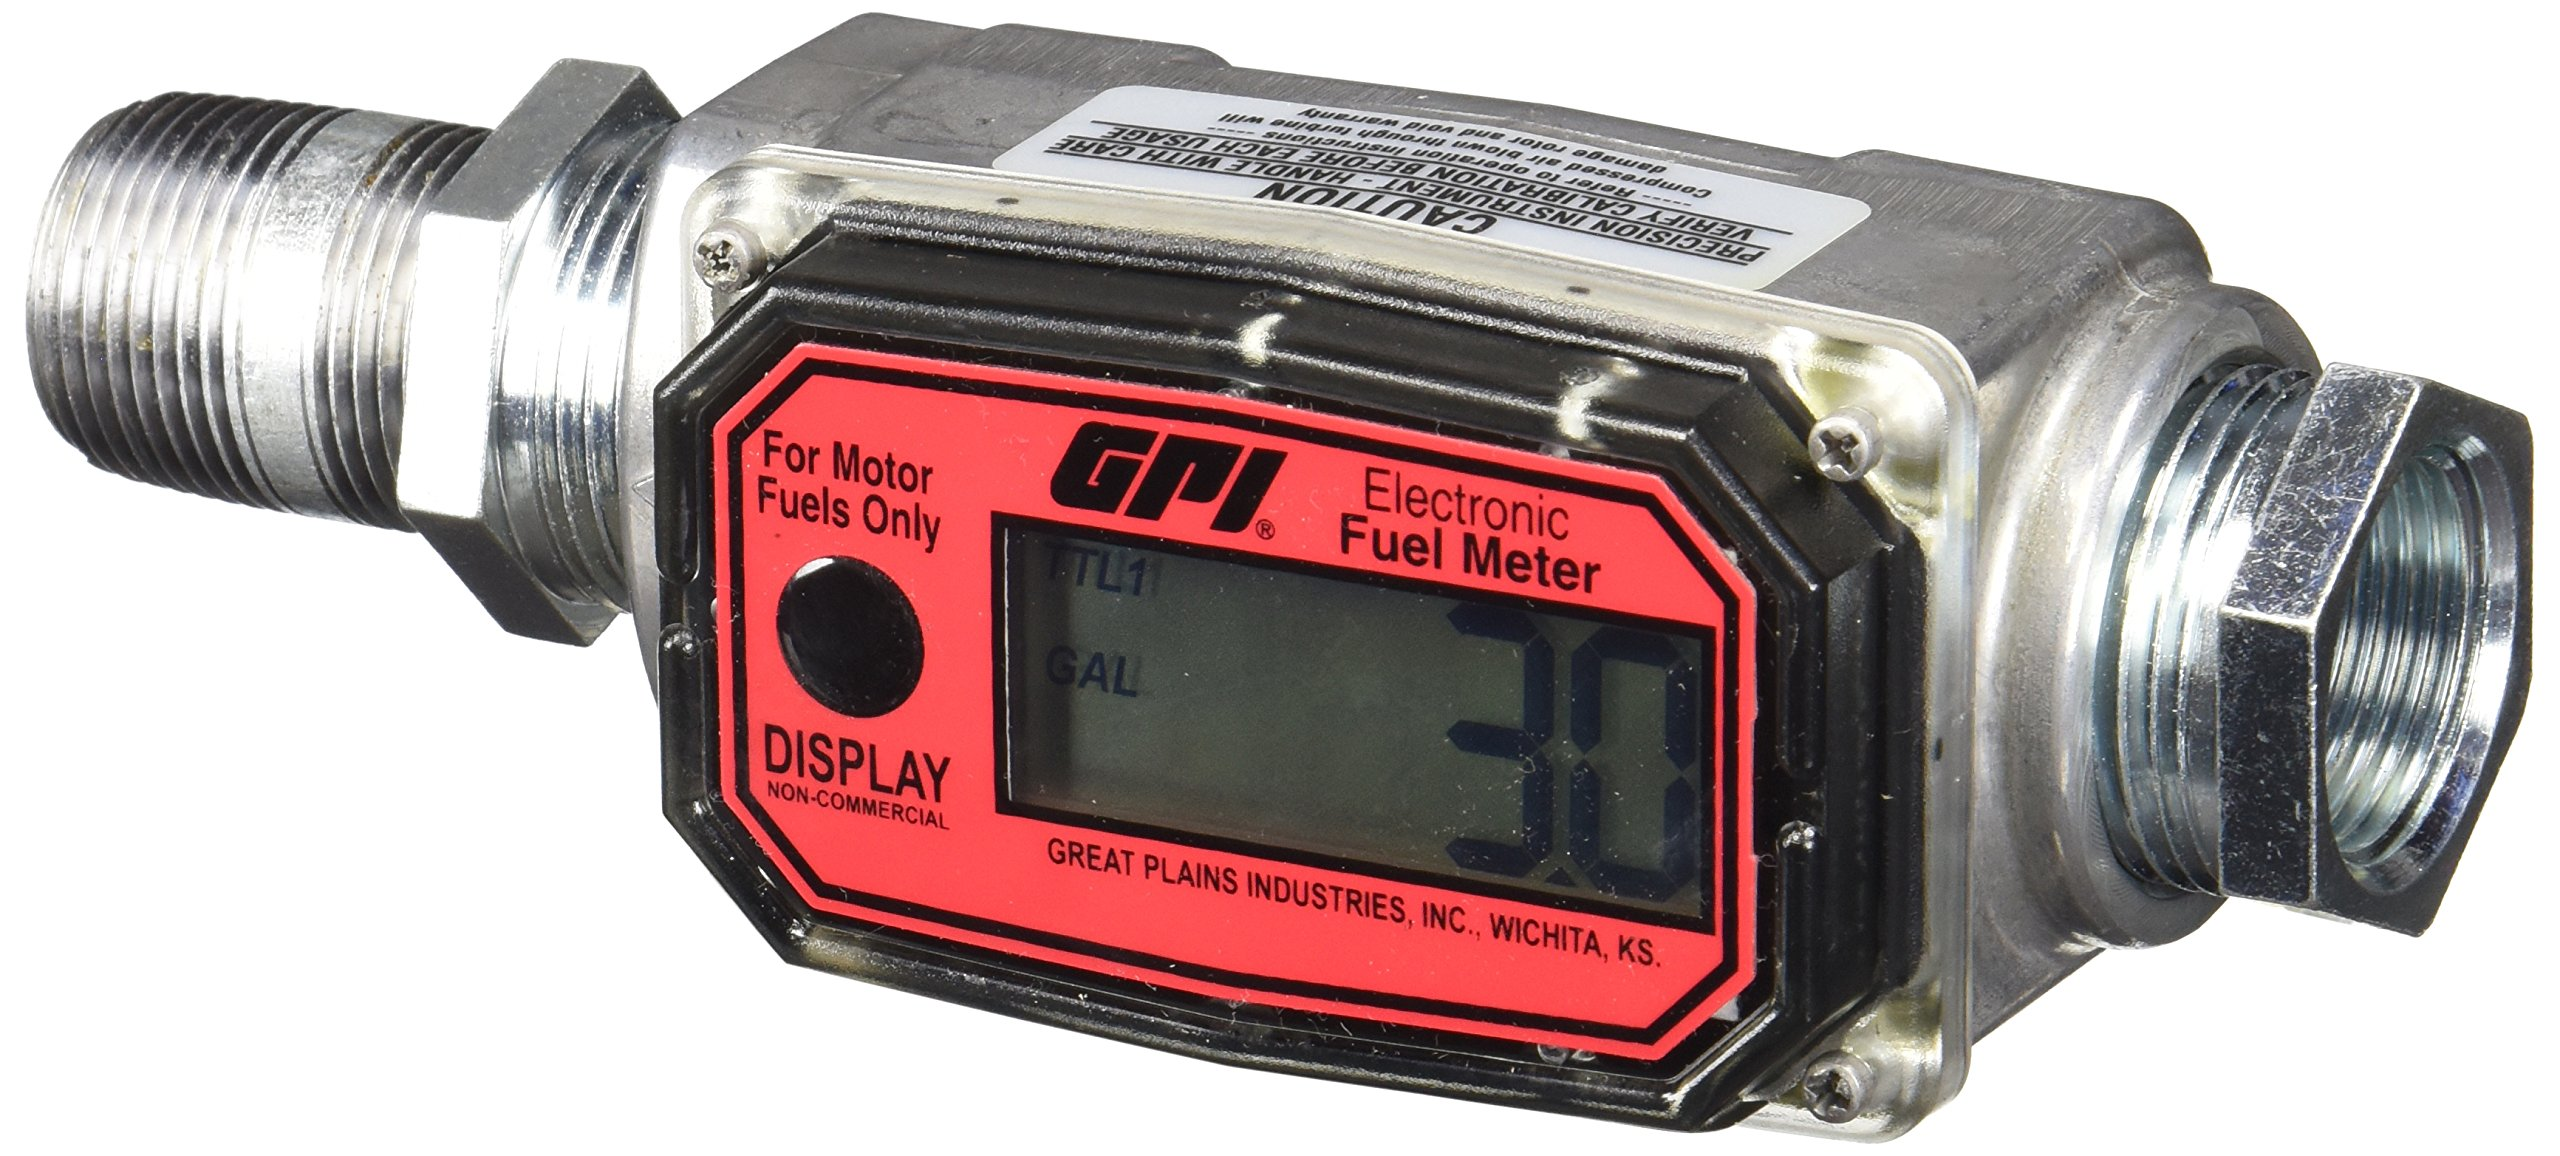 GPI 113255-1, 1'' Aluminum Fuel Meter 01A31GM, 3 to 30 GPM, NPT Thread, 300 PSI